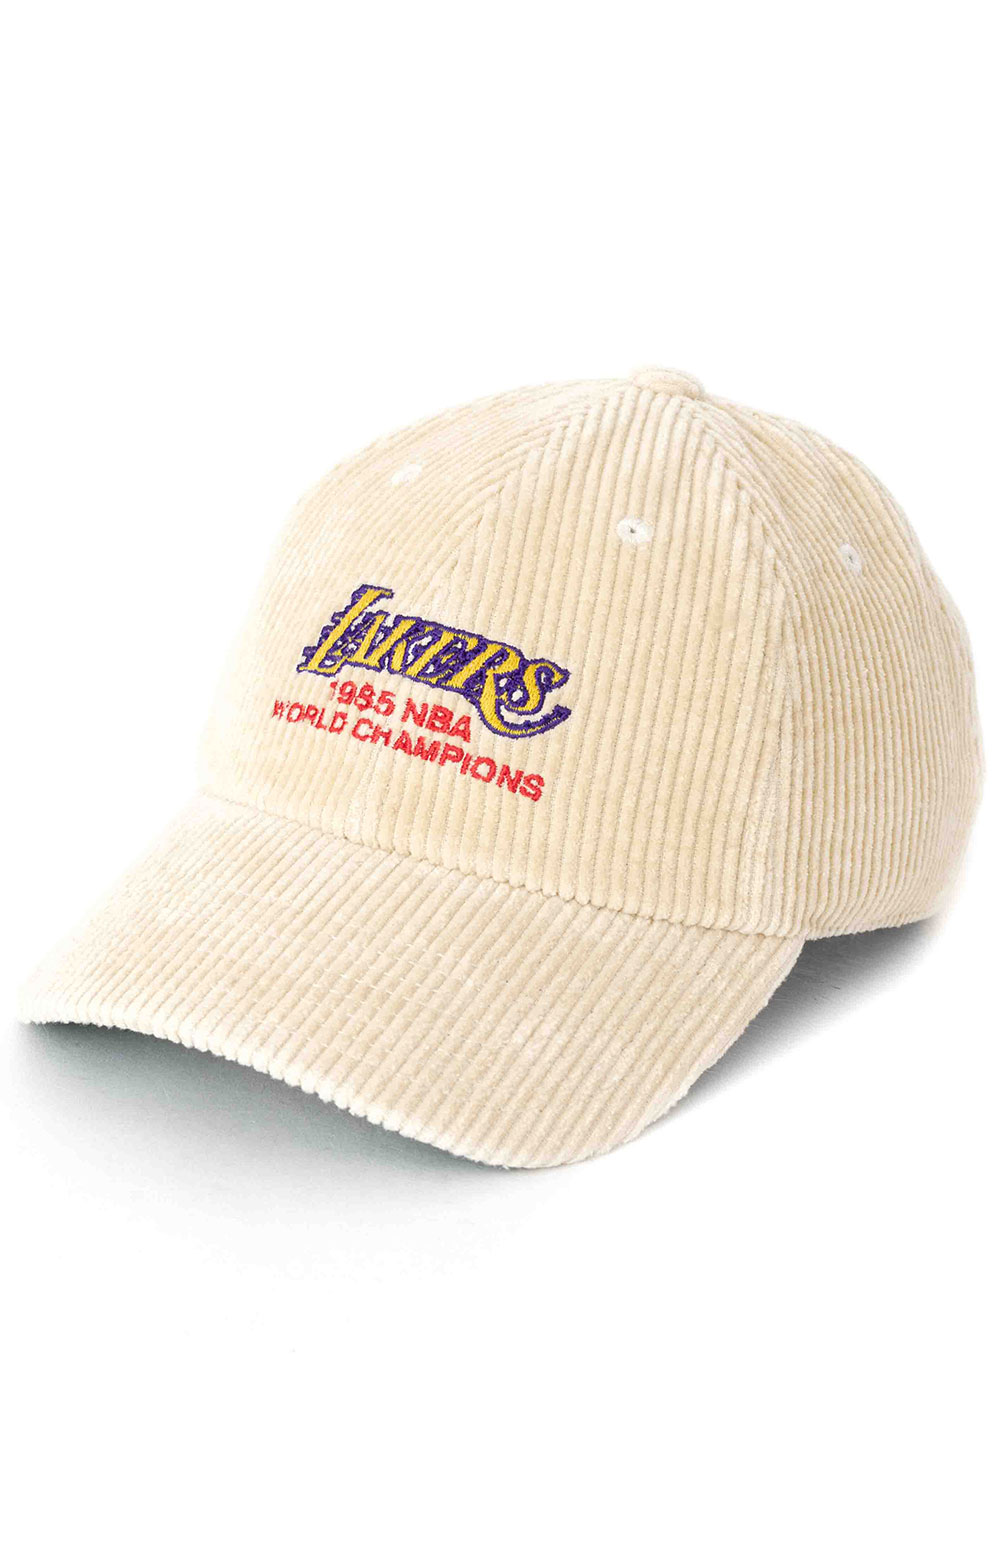 85 World Champs Dad Hat - Lakers